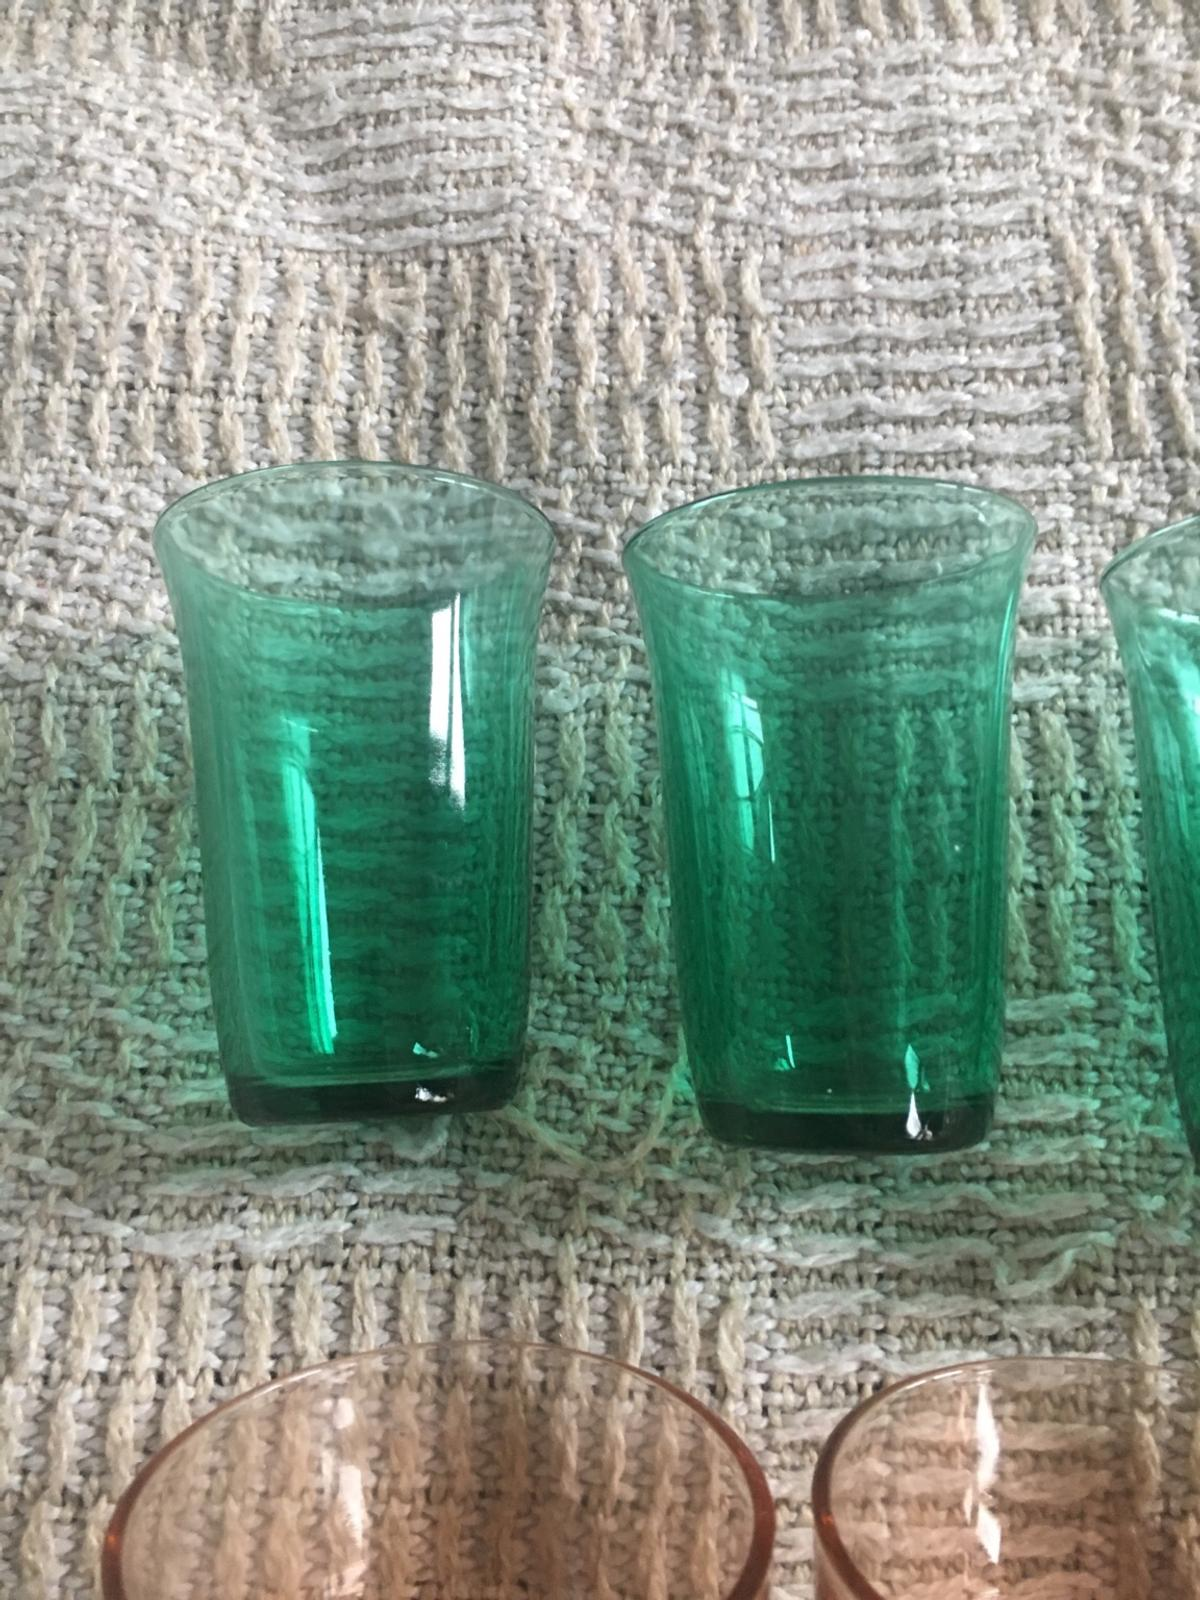 Assortment of small drinking glasses. Clearing out so not required. 22 glasses.